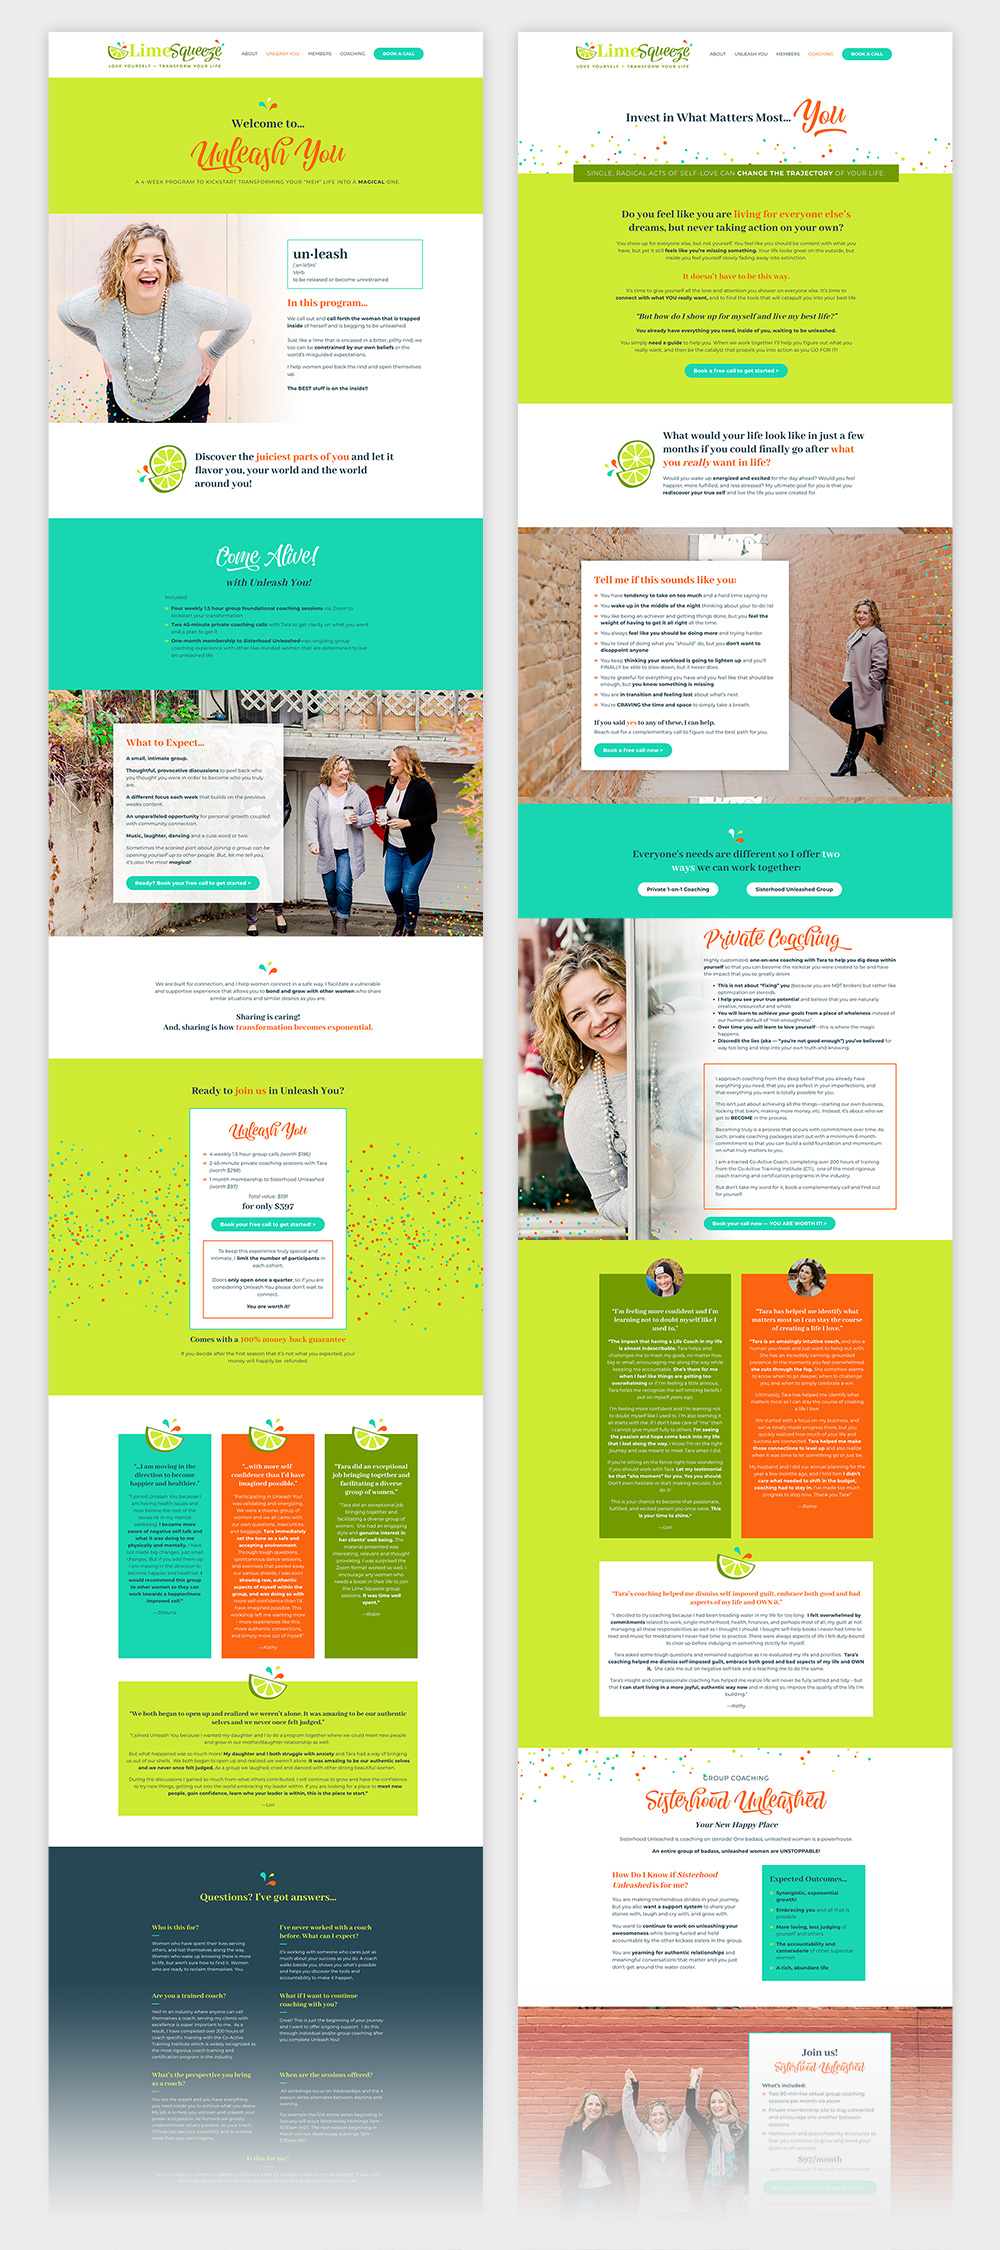 Lime Squeeze Sales Pages